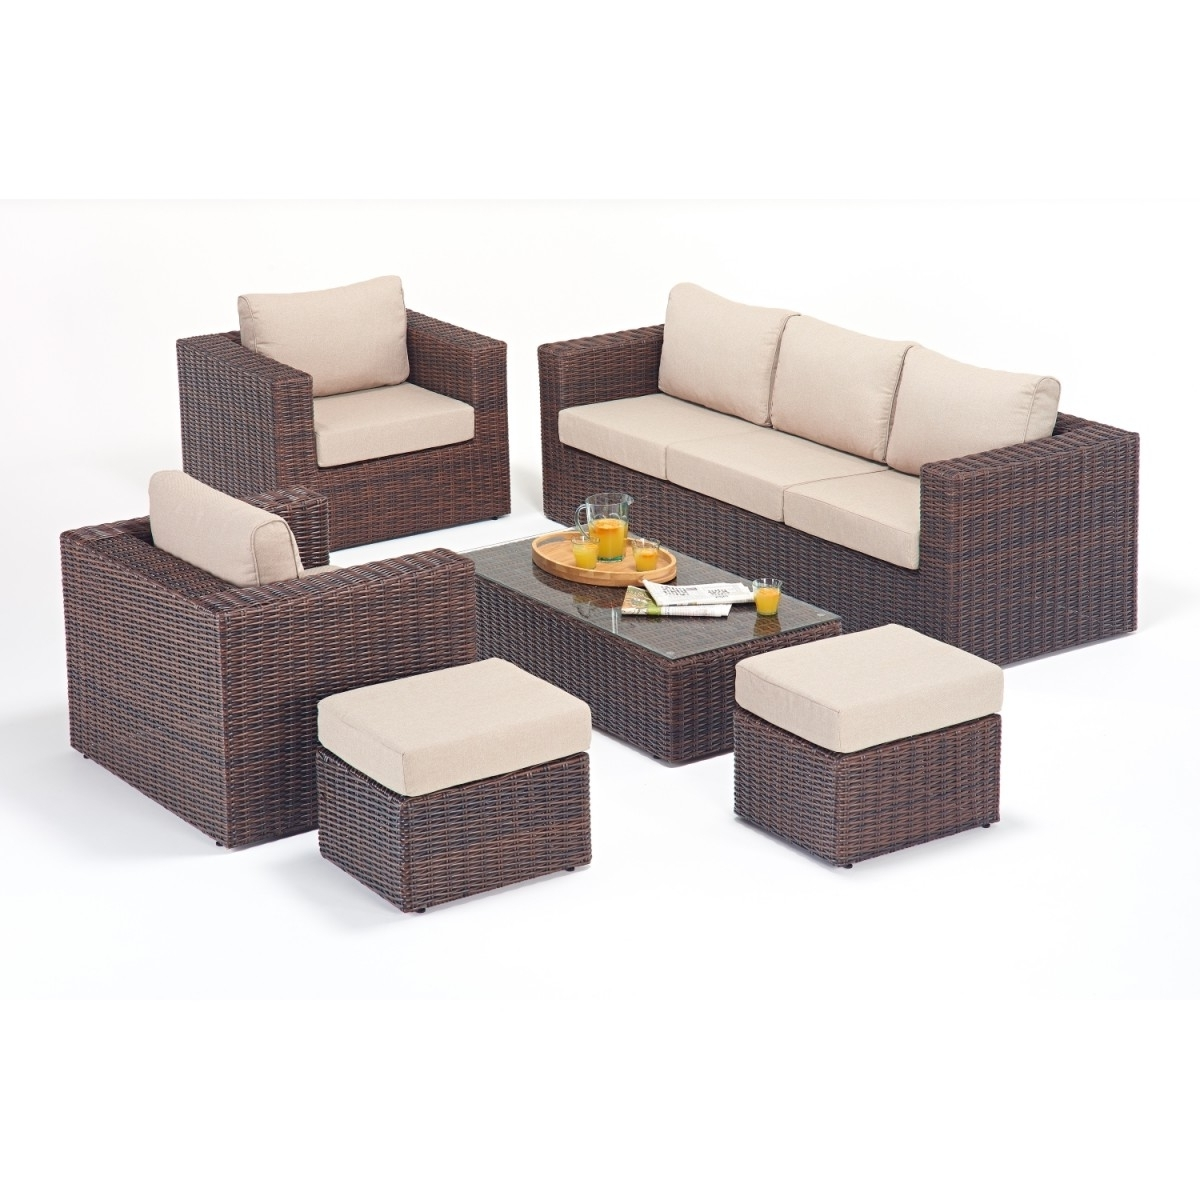 Rattan Sets – Windsor Large Sofa Set Wgf 2706 Throughout Newest Windsor Sofas (View 7 of 20)